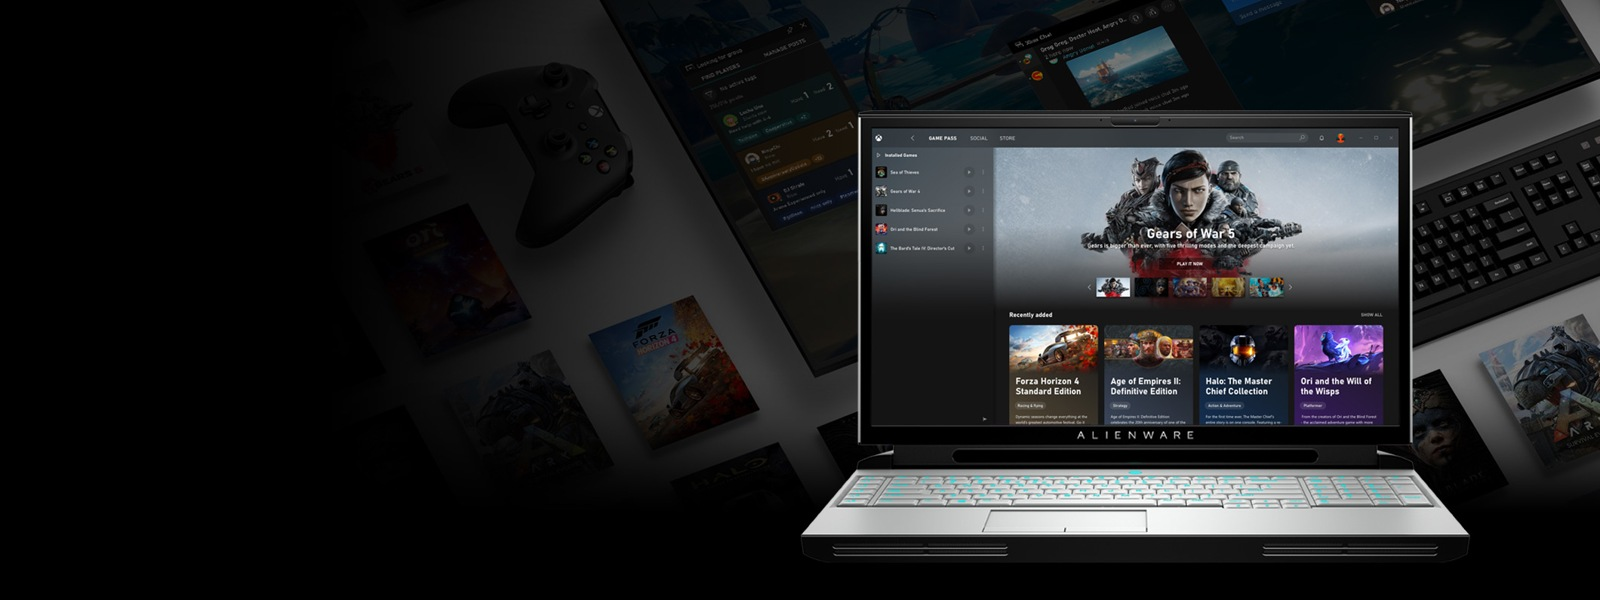 An Alienware laptop sits open with the Xbox app open showing Game Pass for PC and games like Forza Horizon 4, Age of Empires II: Definitive Edition and more.